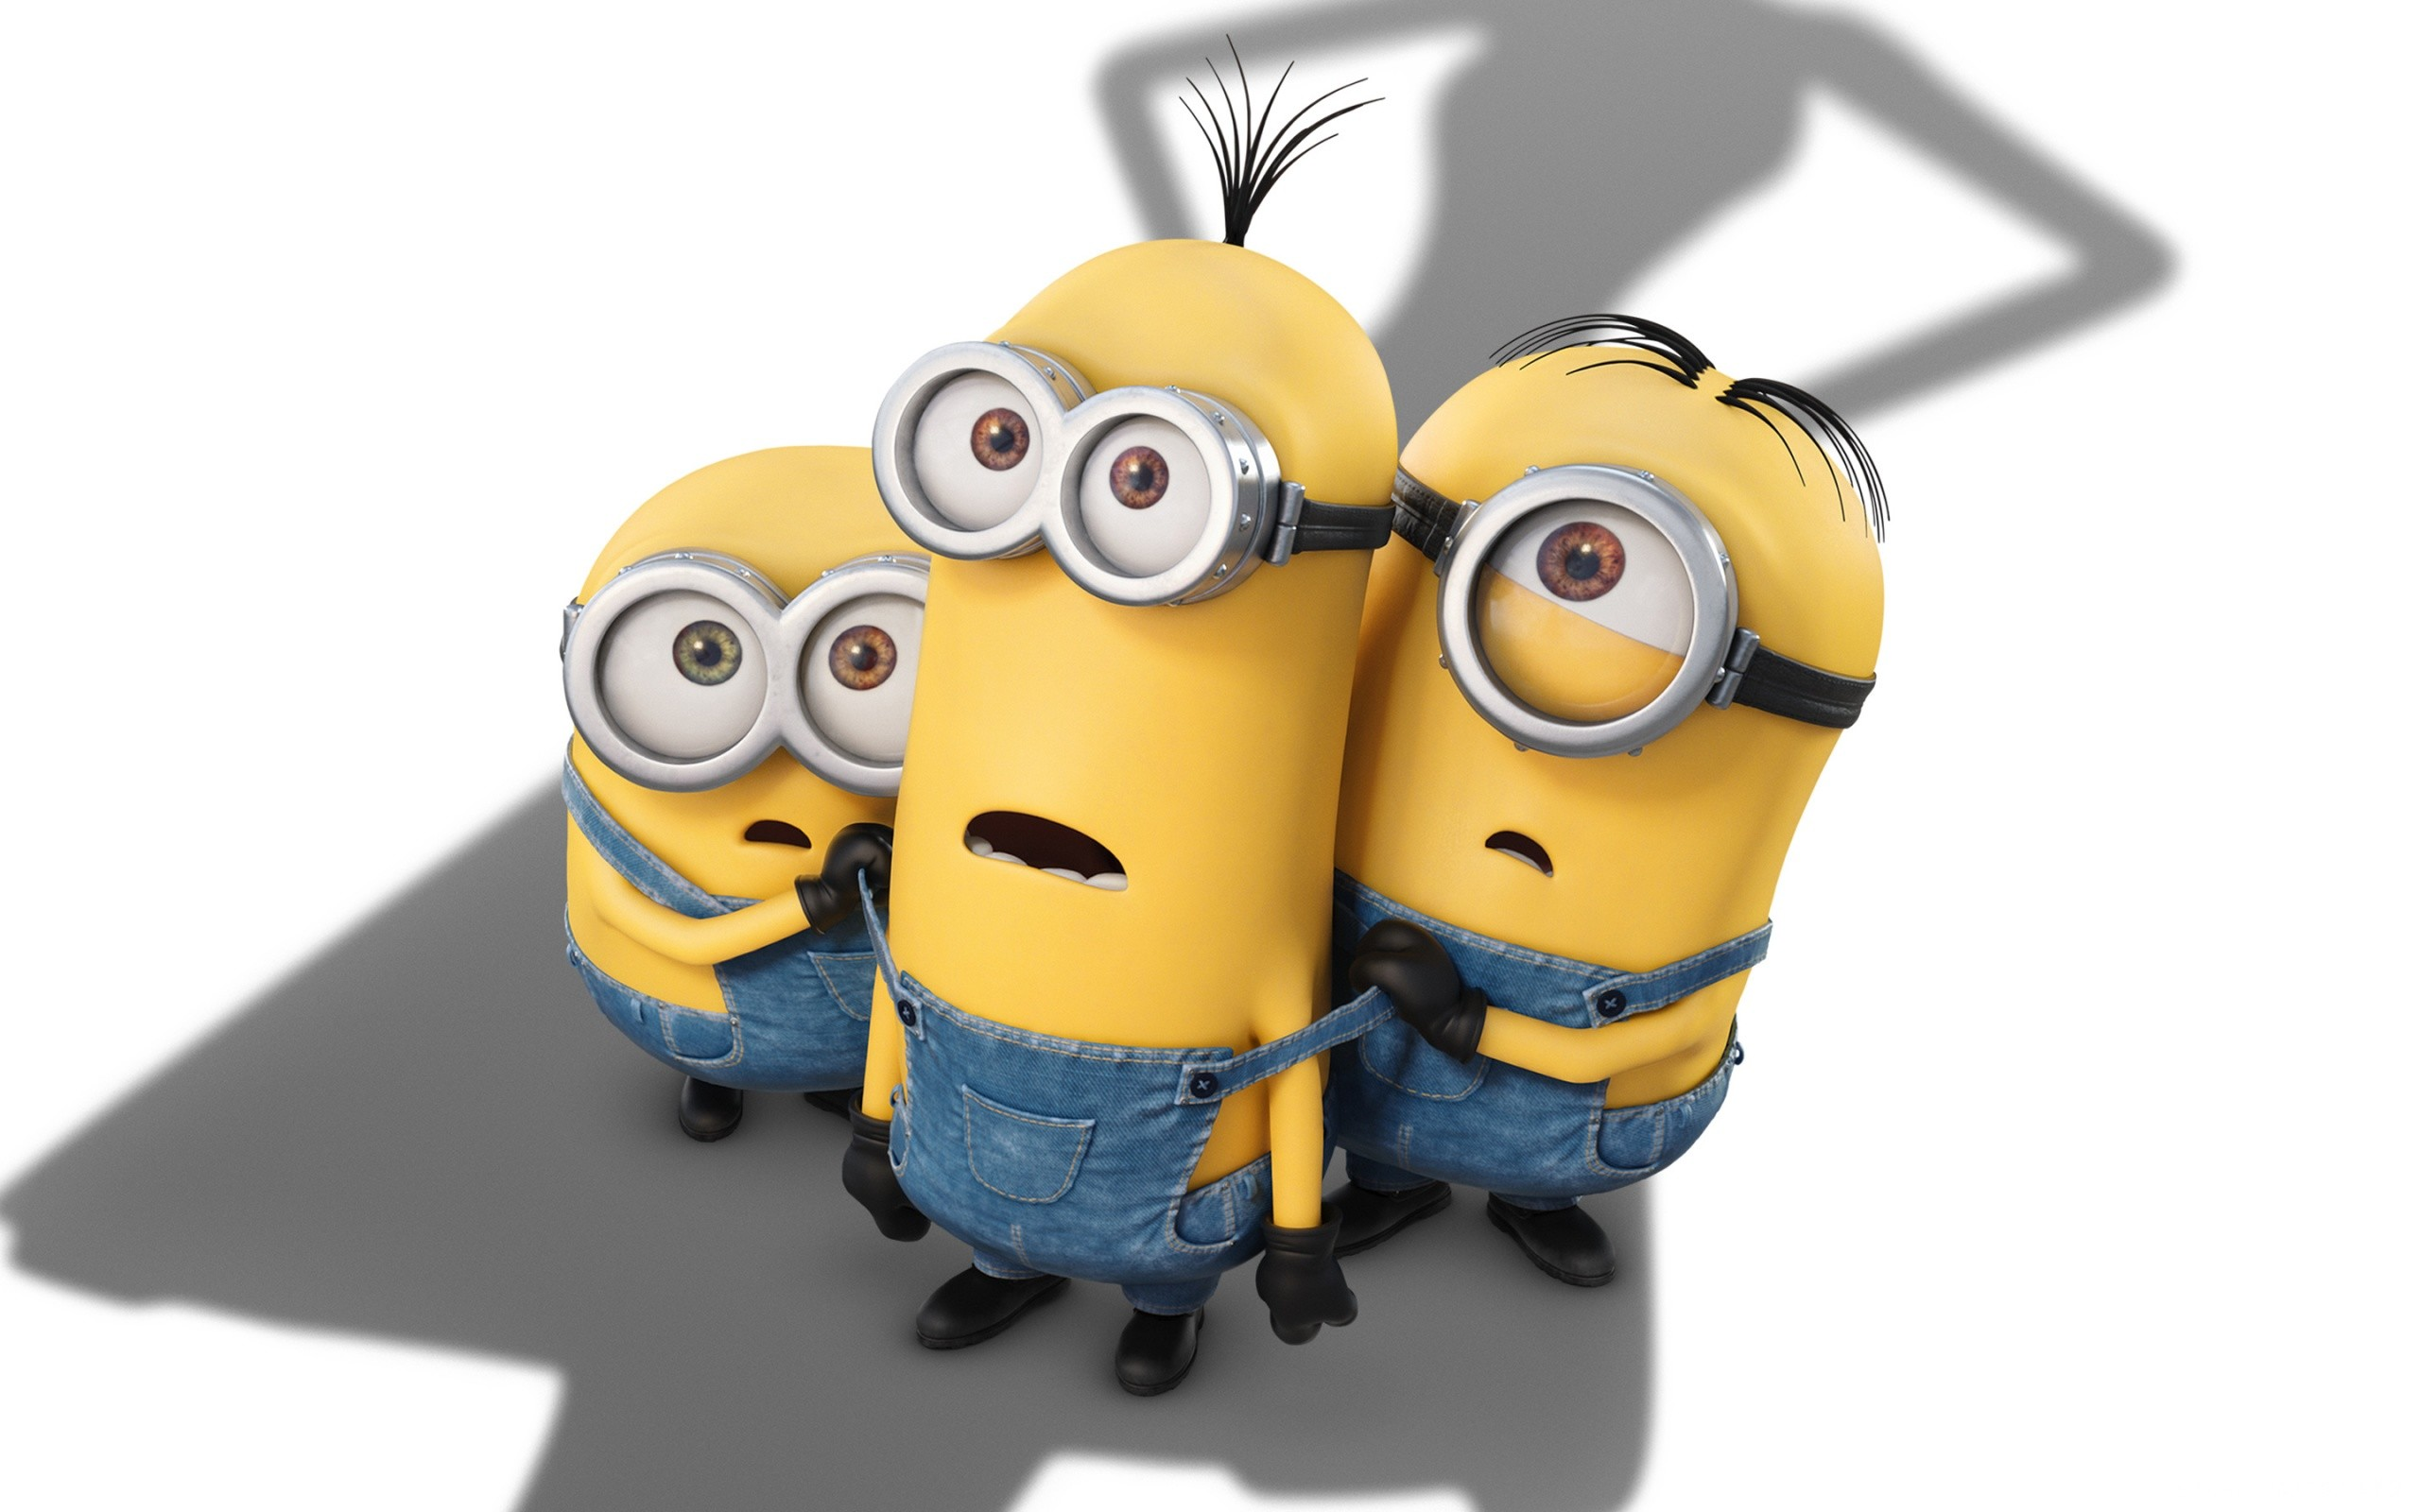 Bob and Kevin Minions in 2015 Best Animated Film Minions wallpaper .